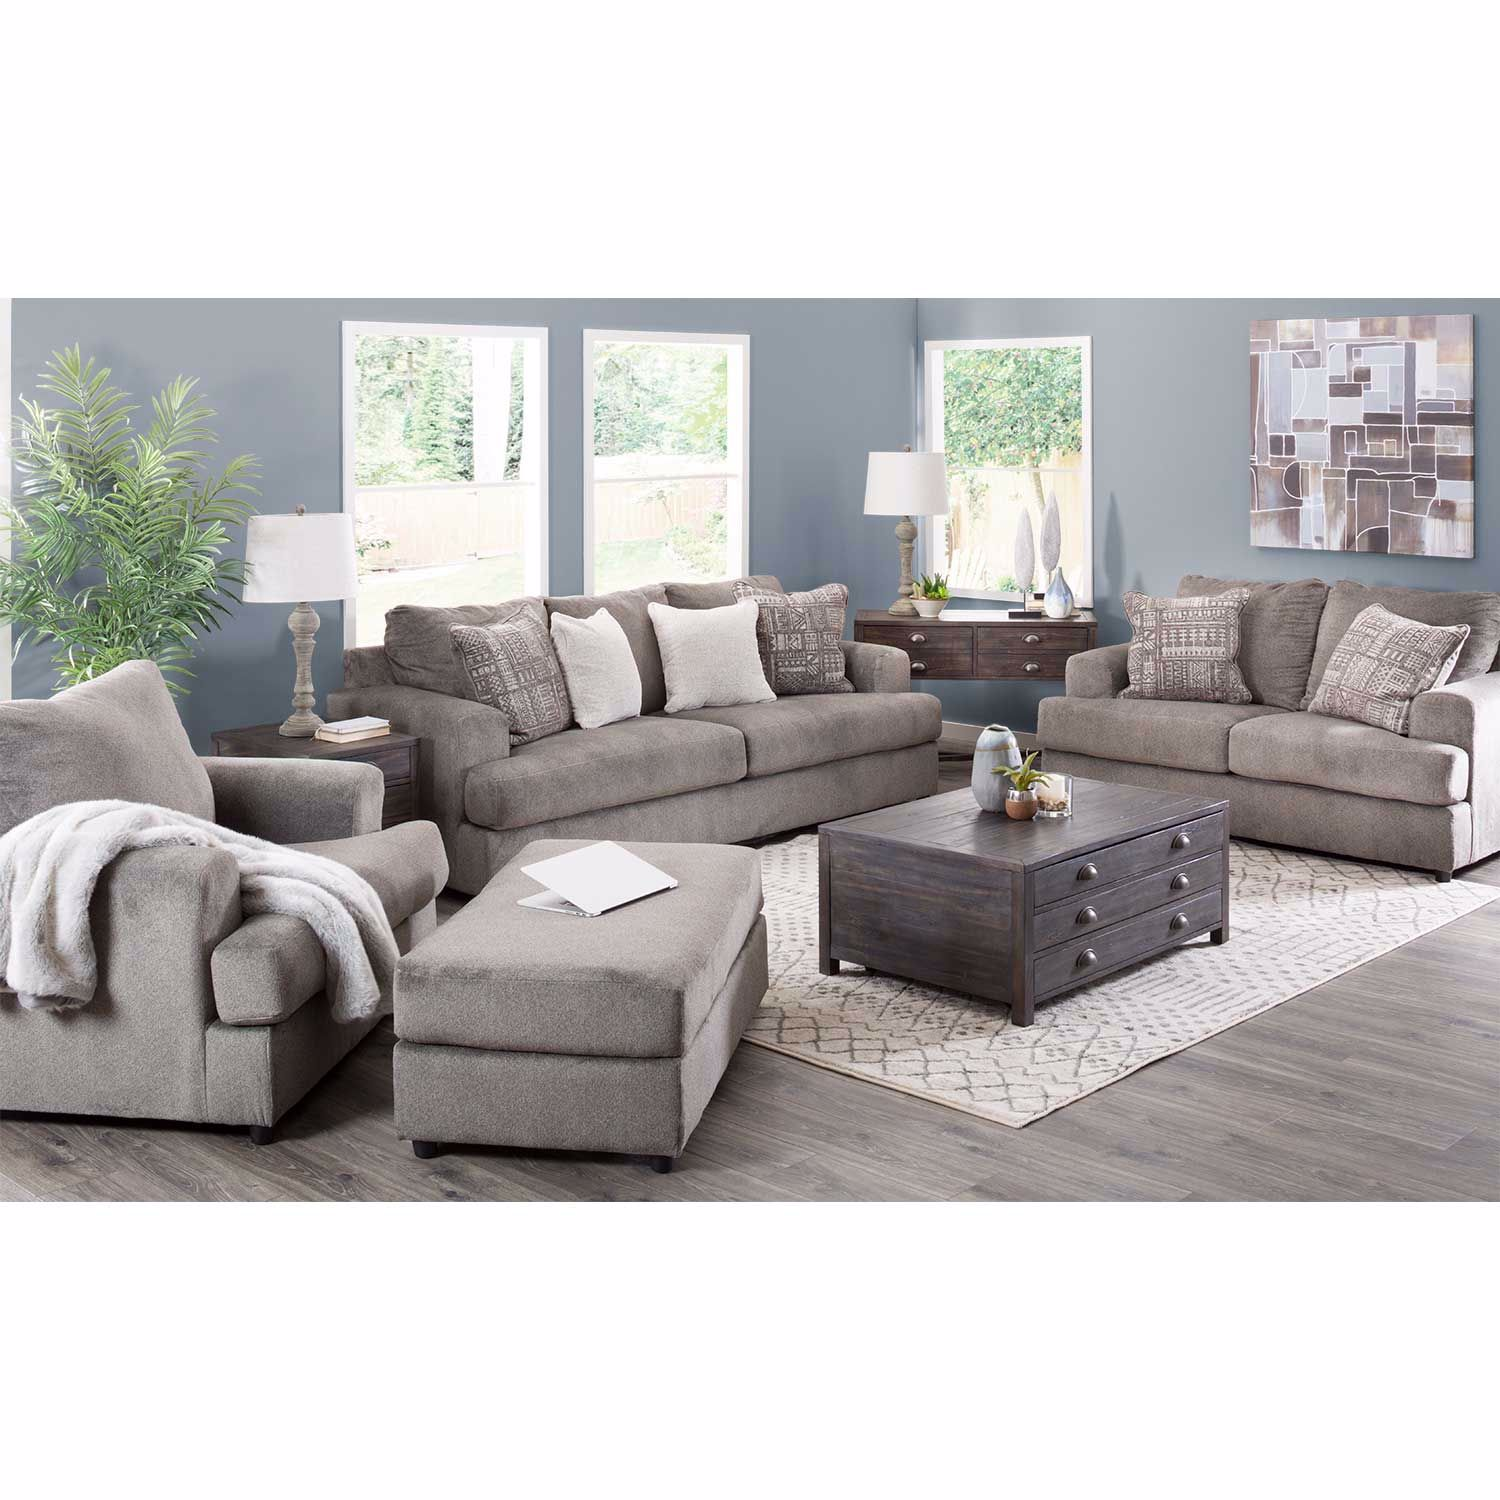 Picture of Soletren Loveseat